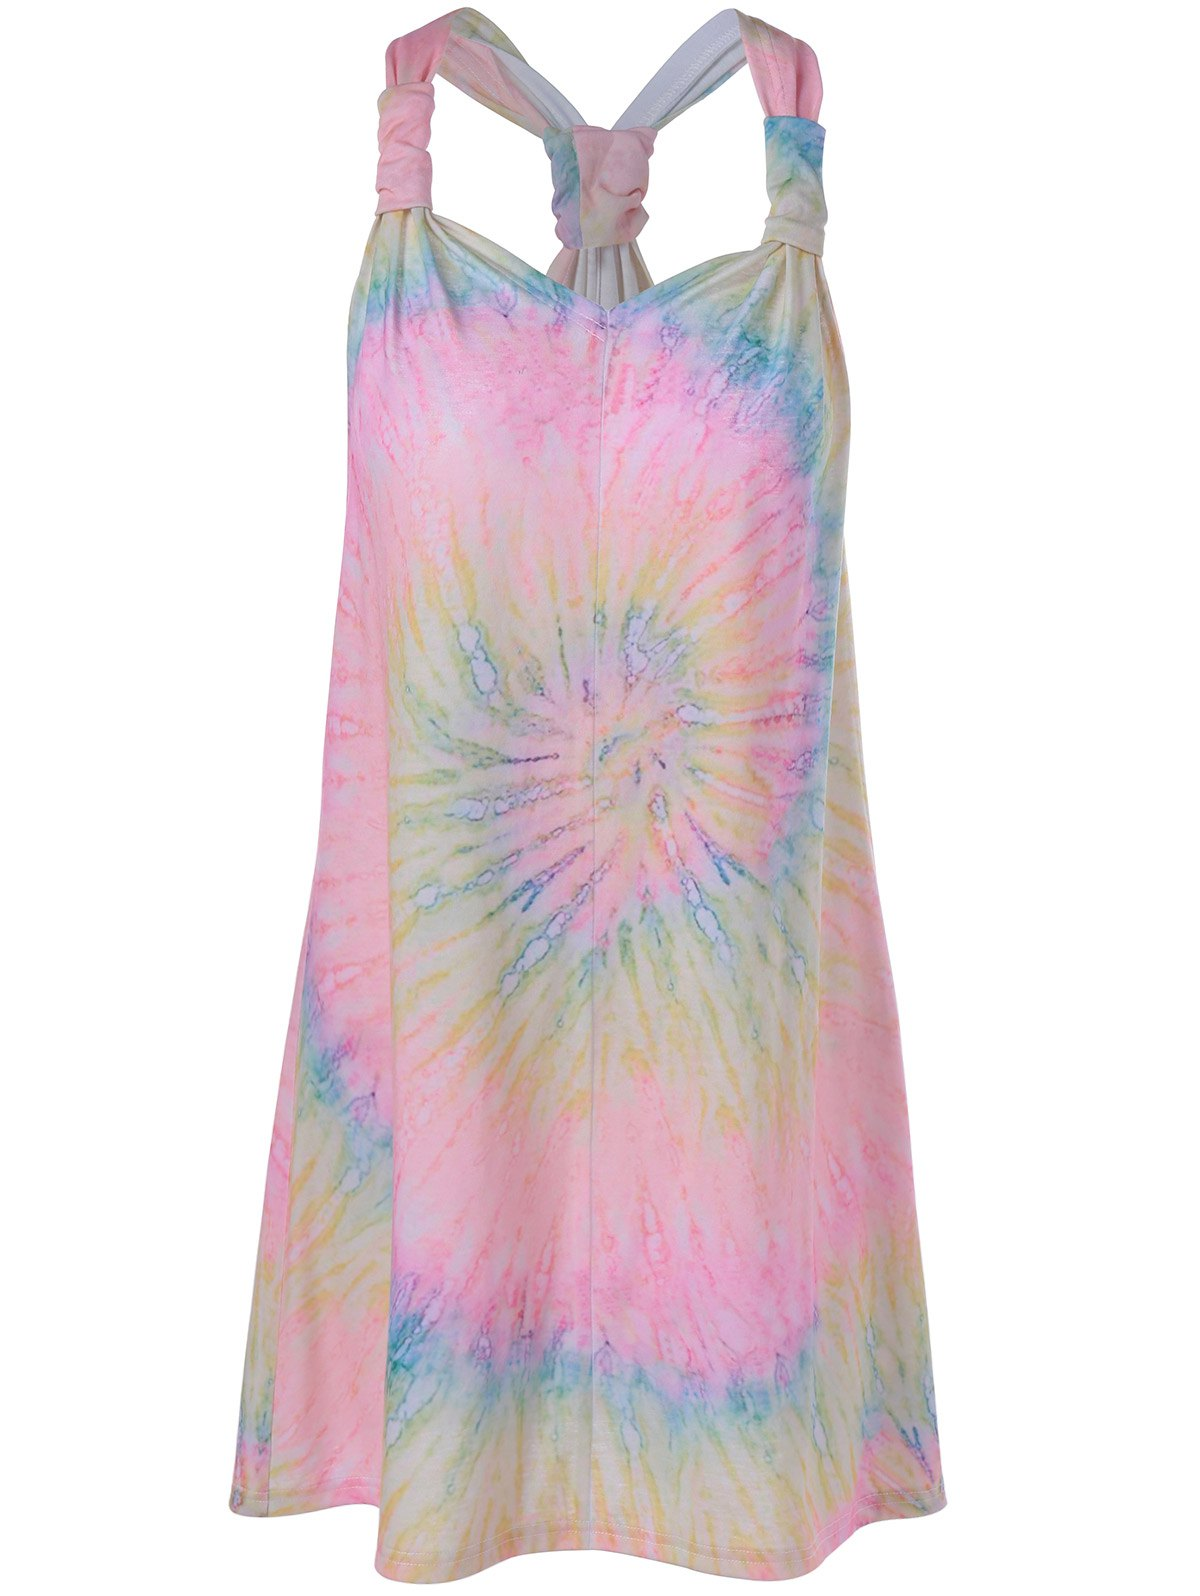 Fashionable Spaghetti Strap Tie-Dyed Racerback Dress For Women - LIGHT PINK XL